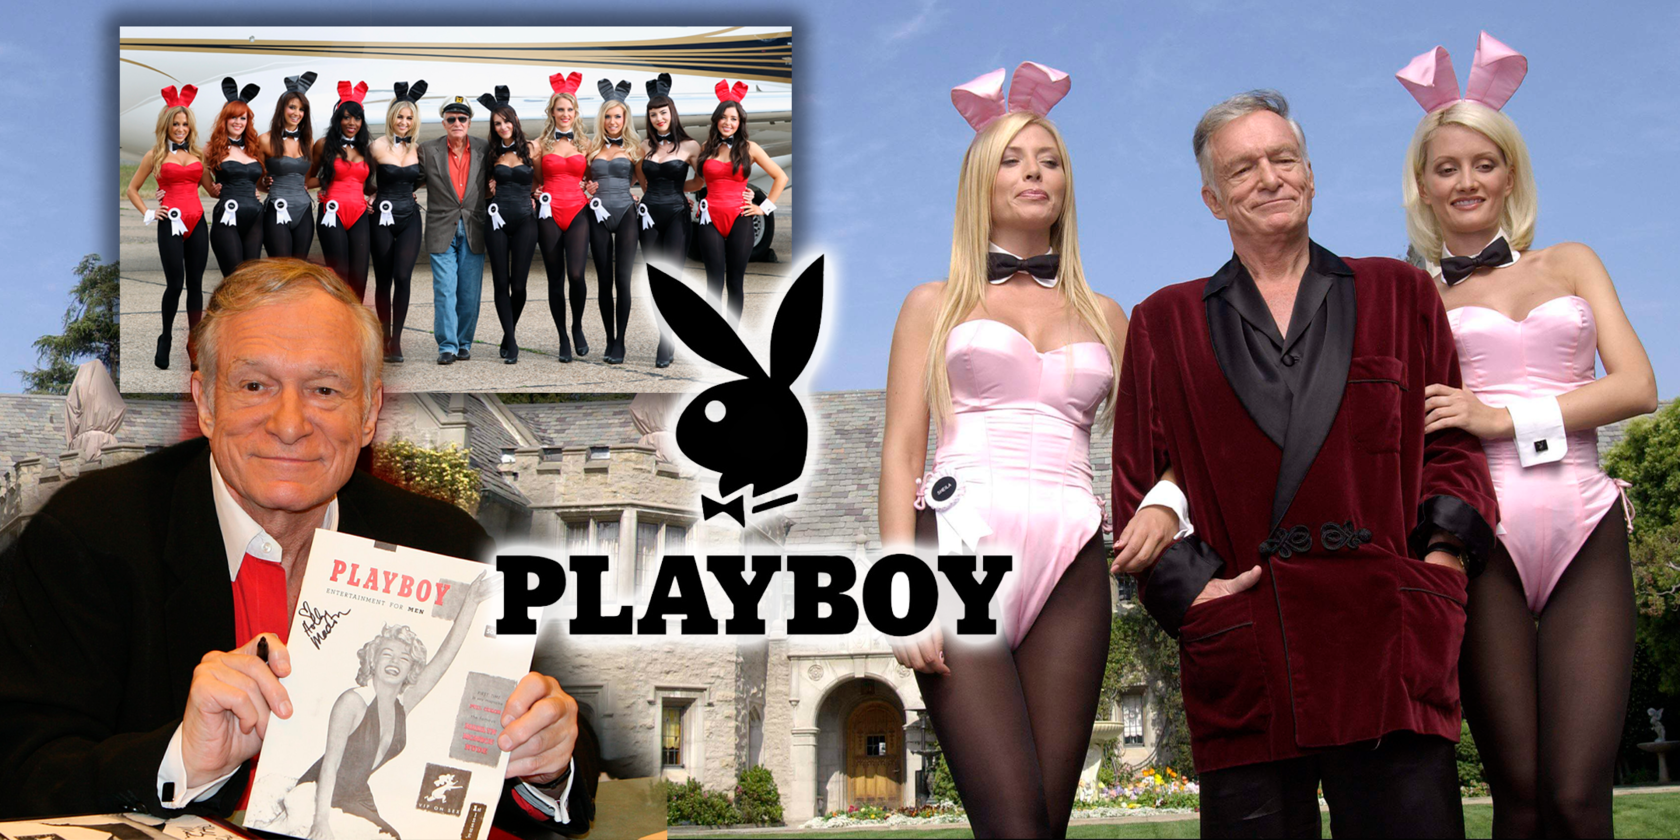 This Is What Playboy Founder Hugh Hefner Thought About Aids And Gay Rights